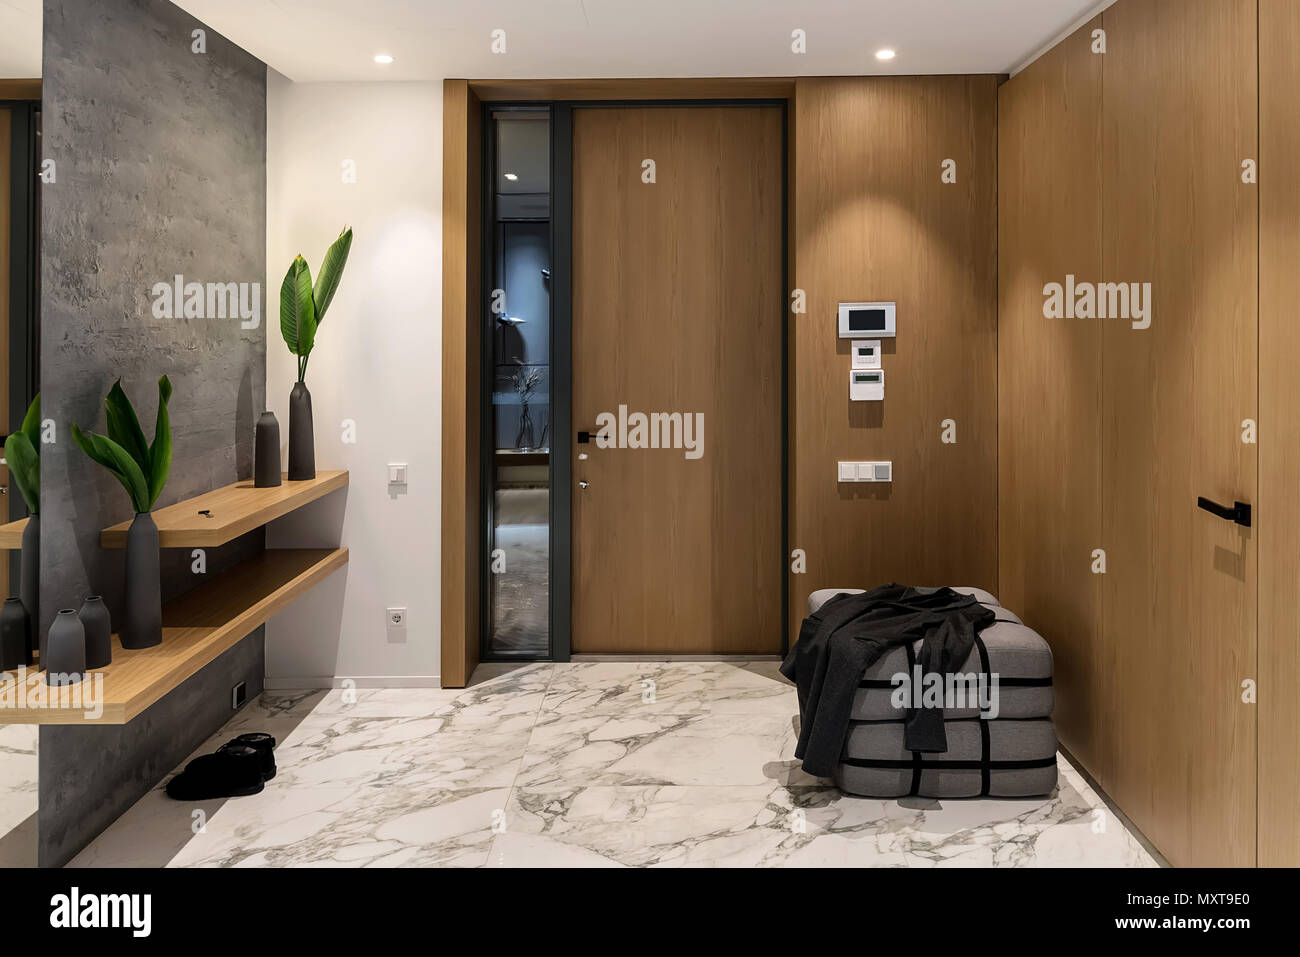 Luminous Corridor With An Entrance Door In A Modern Interior With